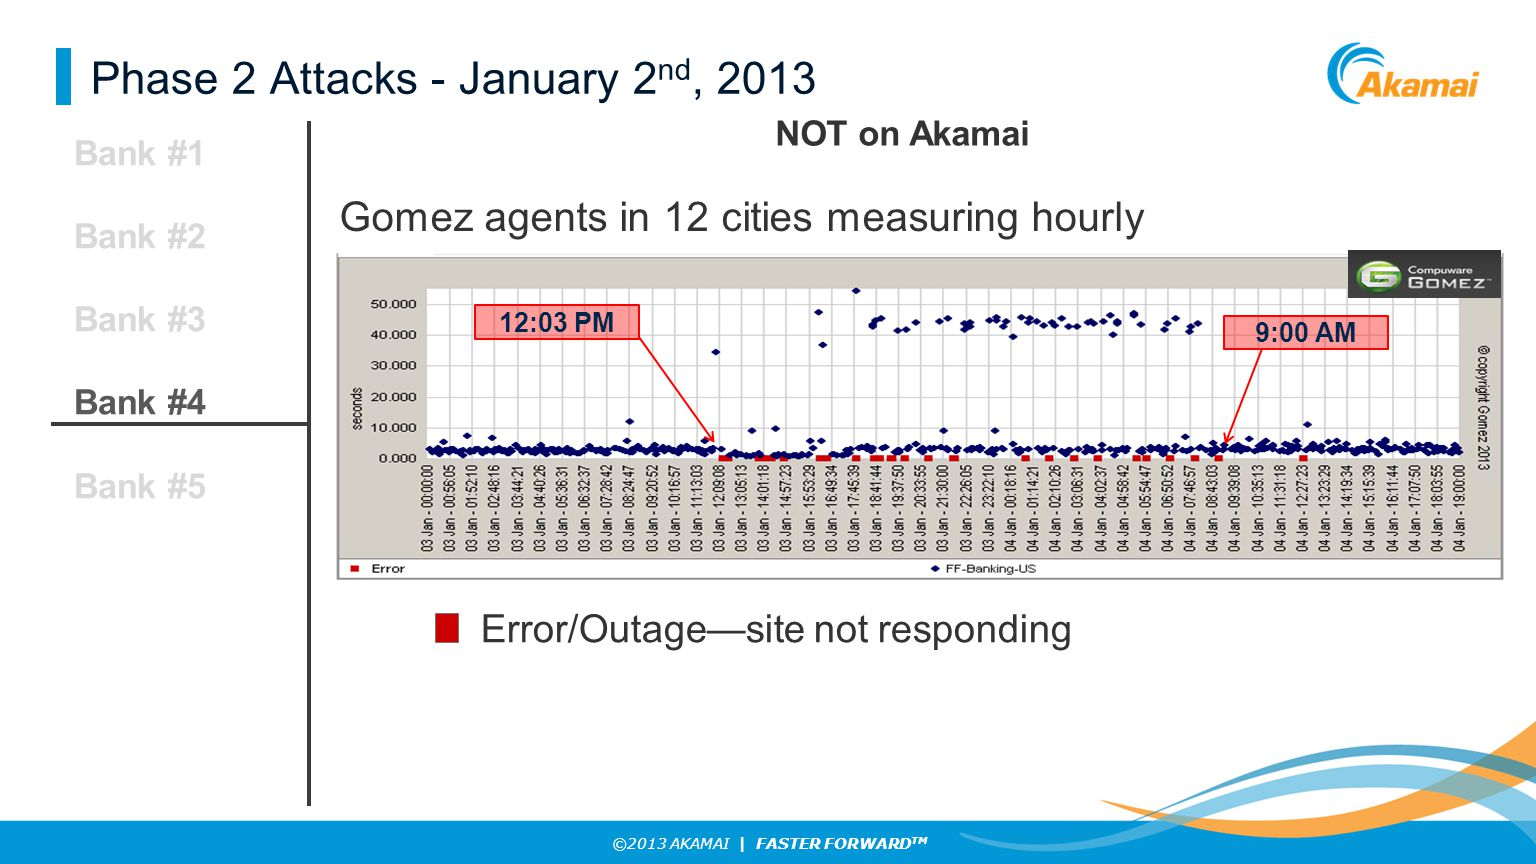 ©2013 AKAMAI | FASTER FORWARD TM Phase 2 Attacks - January 2 nd, 2013 Bank #1 Bank #2 Bank #3 Bank #4 Bank #5 12:03 PM 9:00 AM Error/Outage—site not responding Gomez agents in 12 cities measuring hourly NOT on Akamai